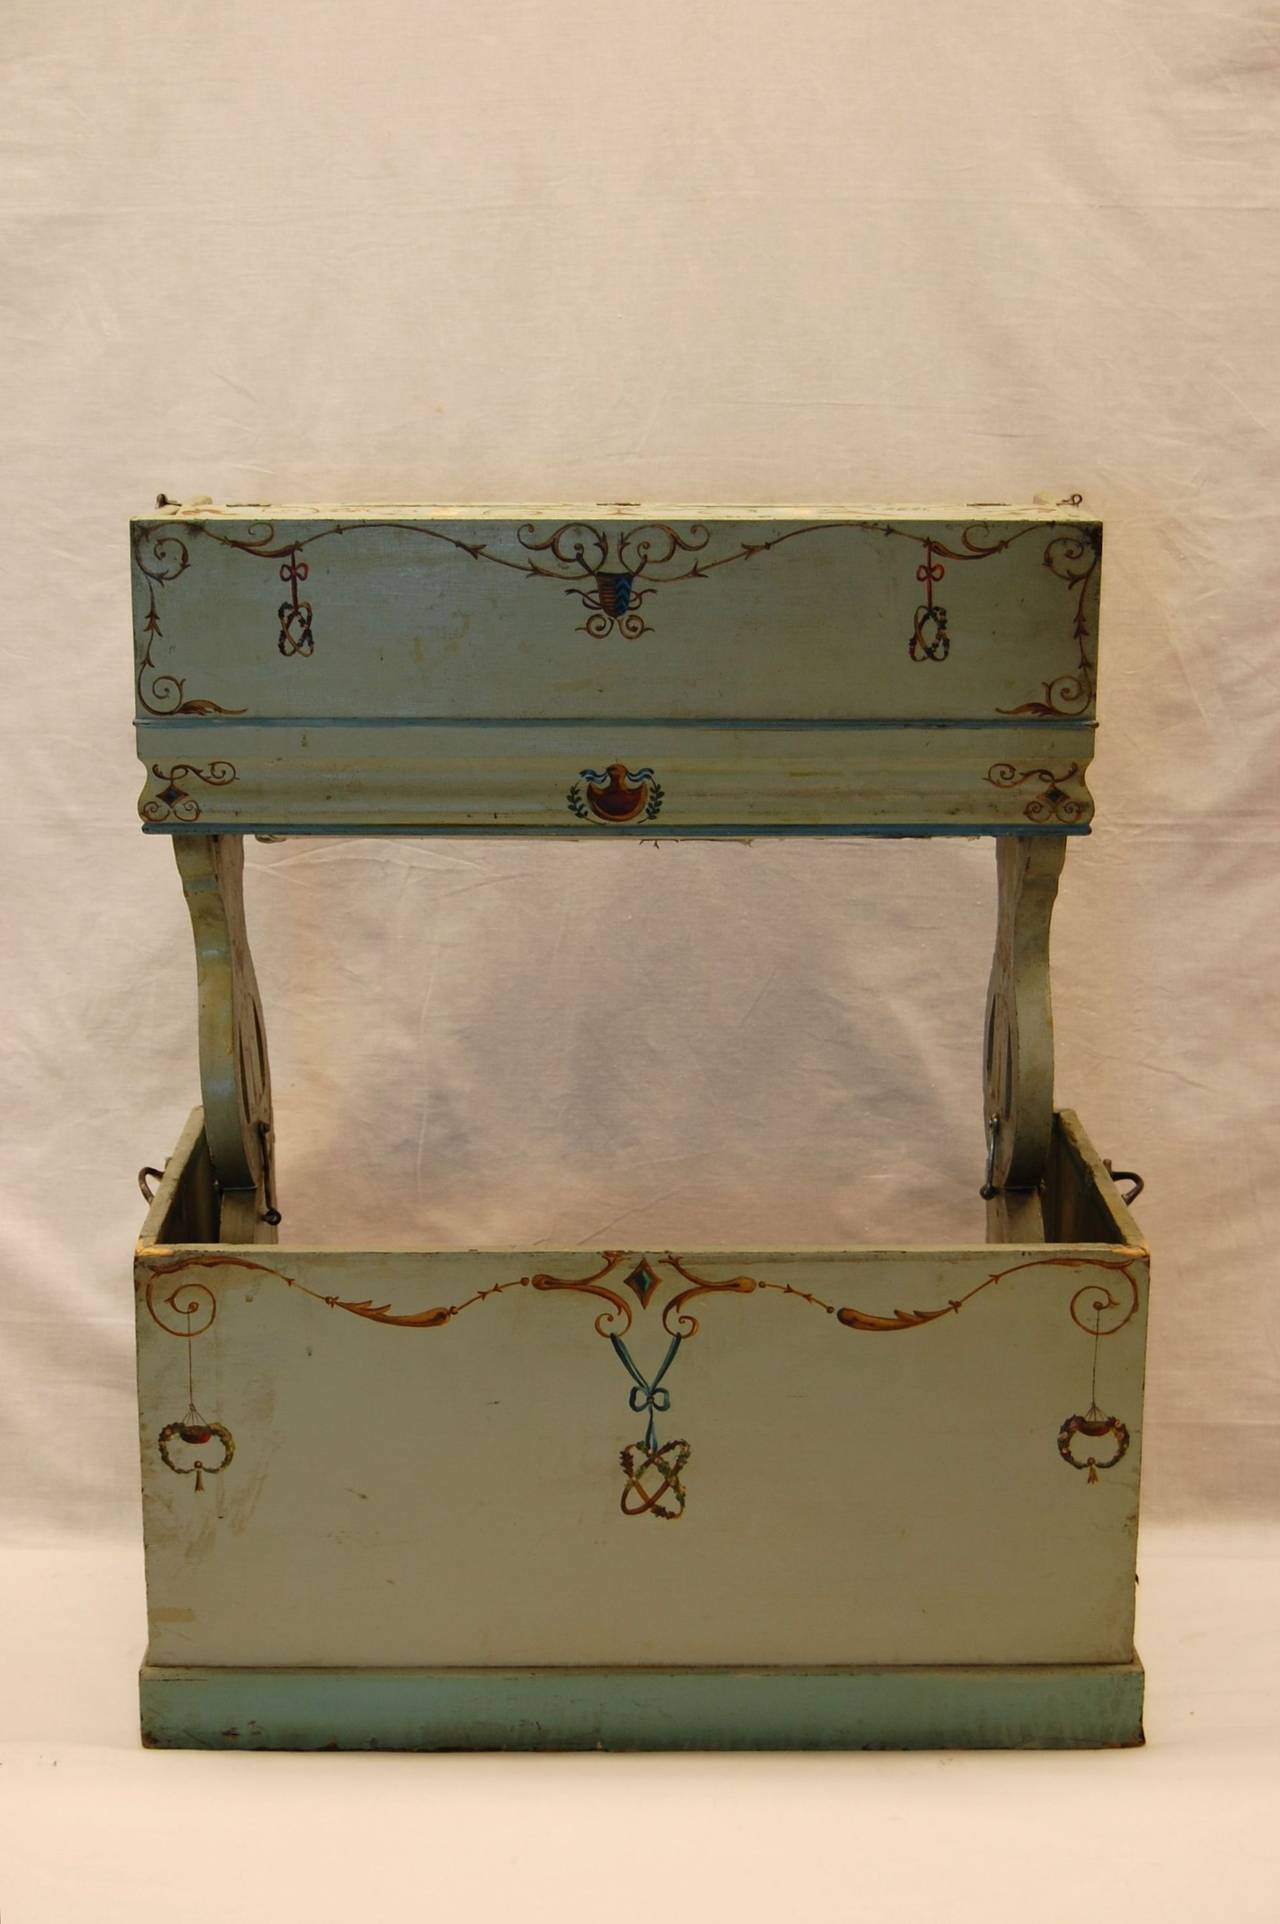 19th Century European Childs Pump Organ in Decoratively Painted Wood Case For Sale 2